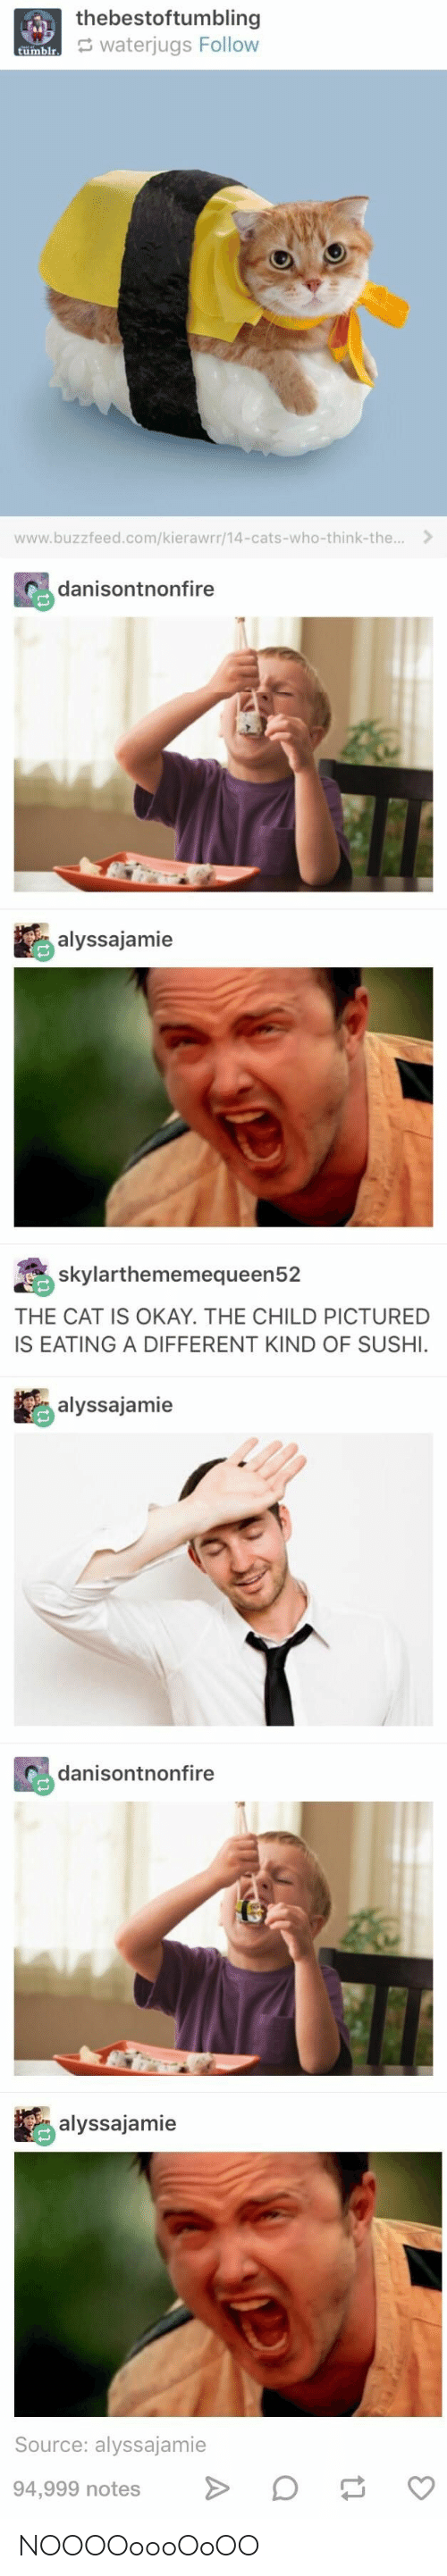 Sushi: thebestoftumbling  waterjugs Follow  tumblr  www.buzzfeed.com/kierawrr/14-cats-who-think-the...  danisontnonfire  alyssajamie  skylarthememequeen52  THE CAT IS OKAY. THE CHILD PICTURED  IS EATING A DIFFERENT KIND OF SUSHI.  alyssajamie  danisontnonfire  alyssajamie  Source: alyssajamie  94,999 notes  tl NOOOOoooOoOO